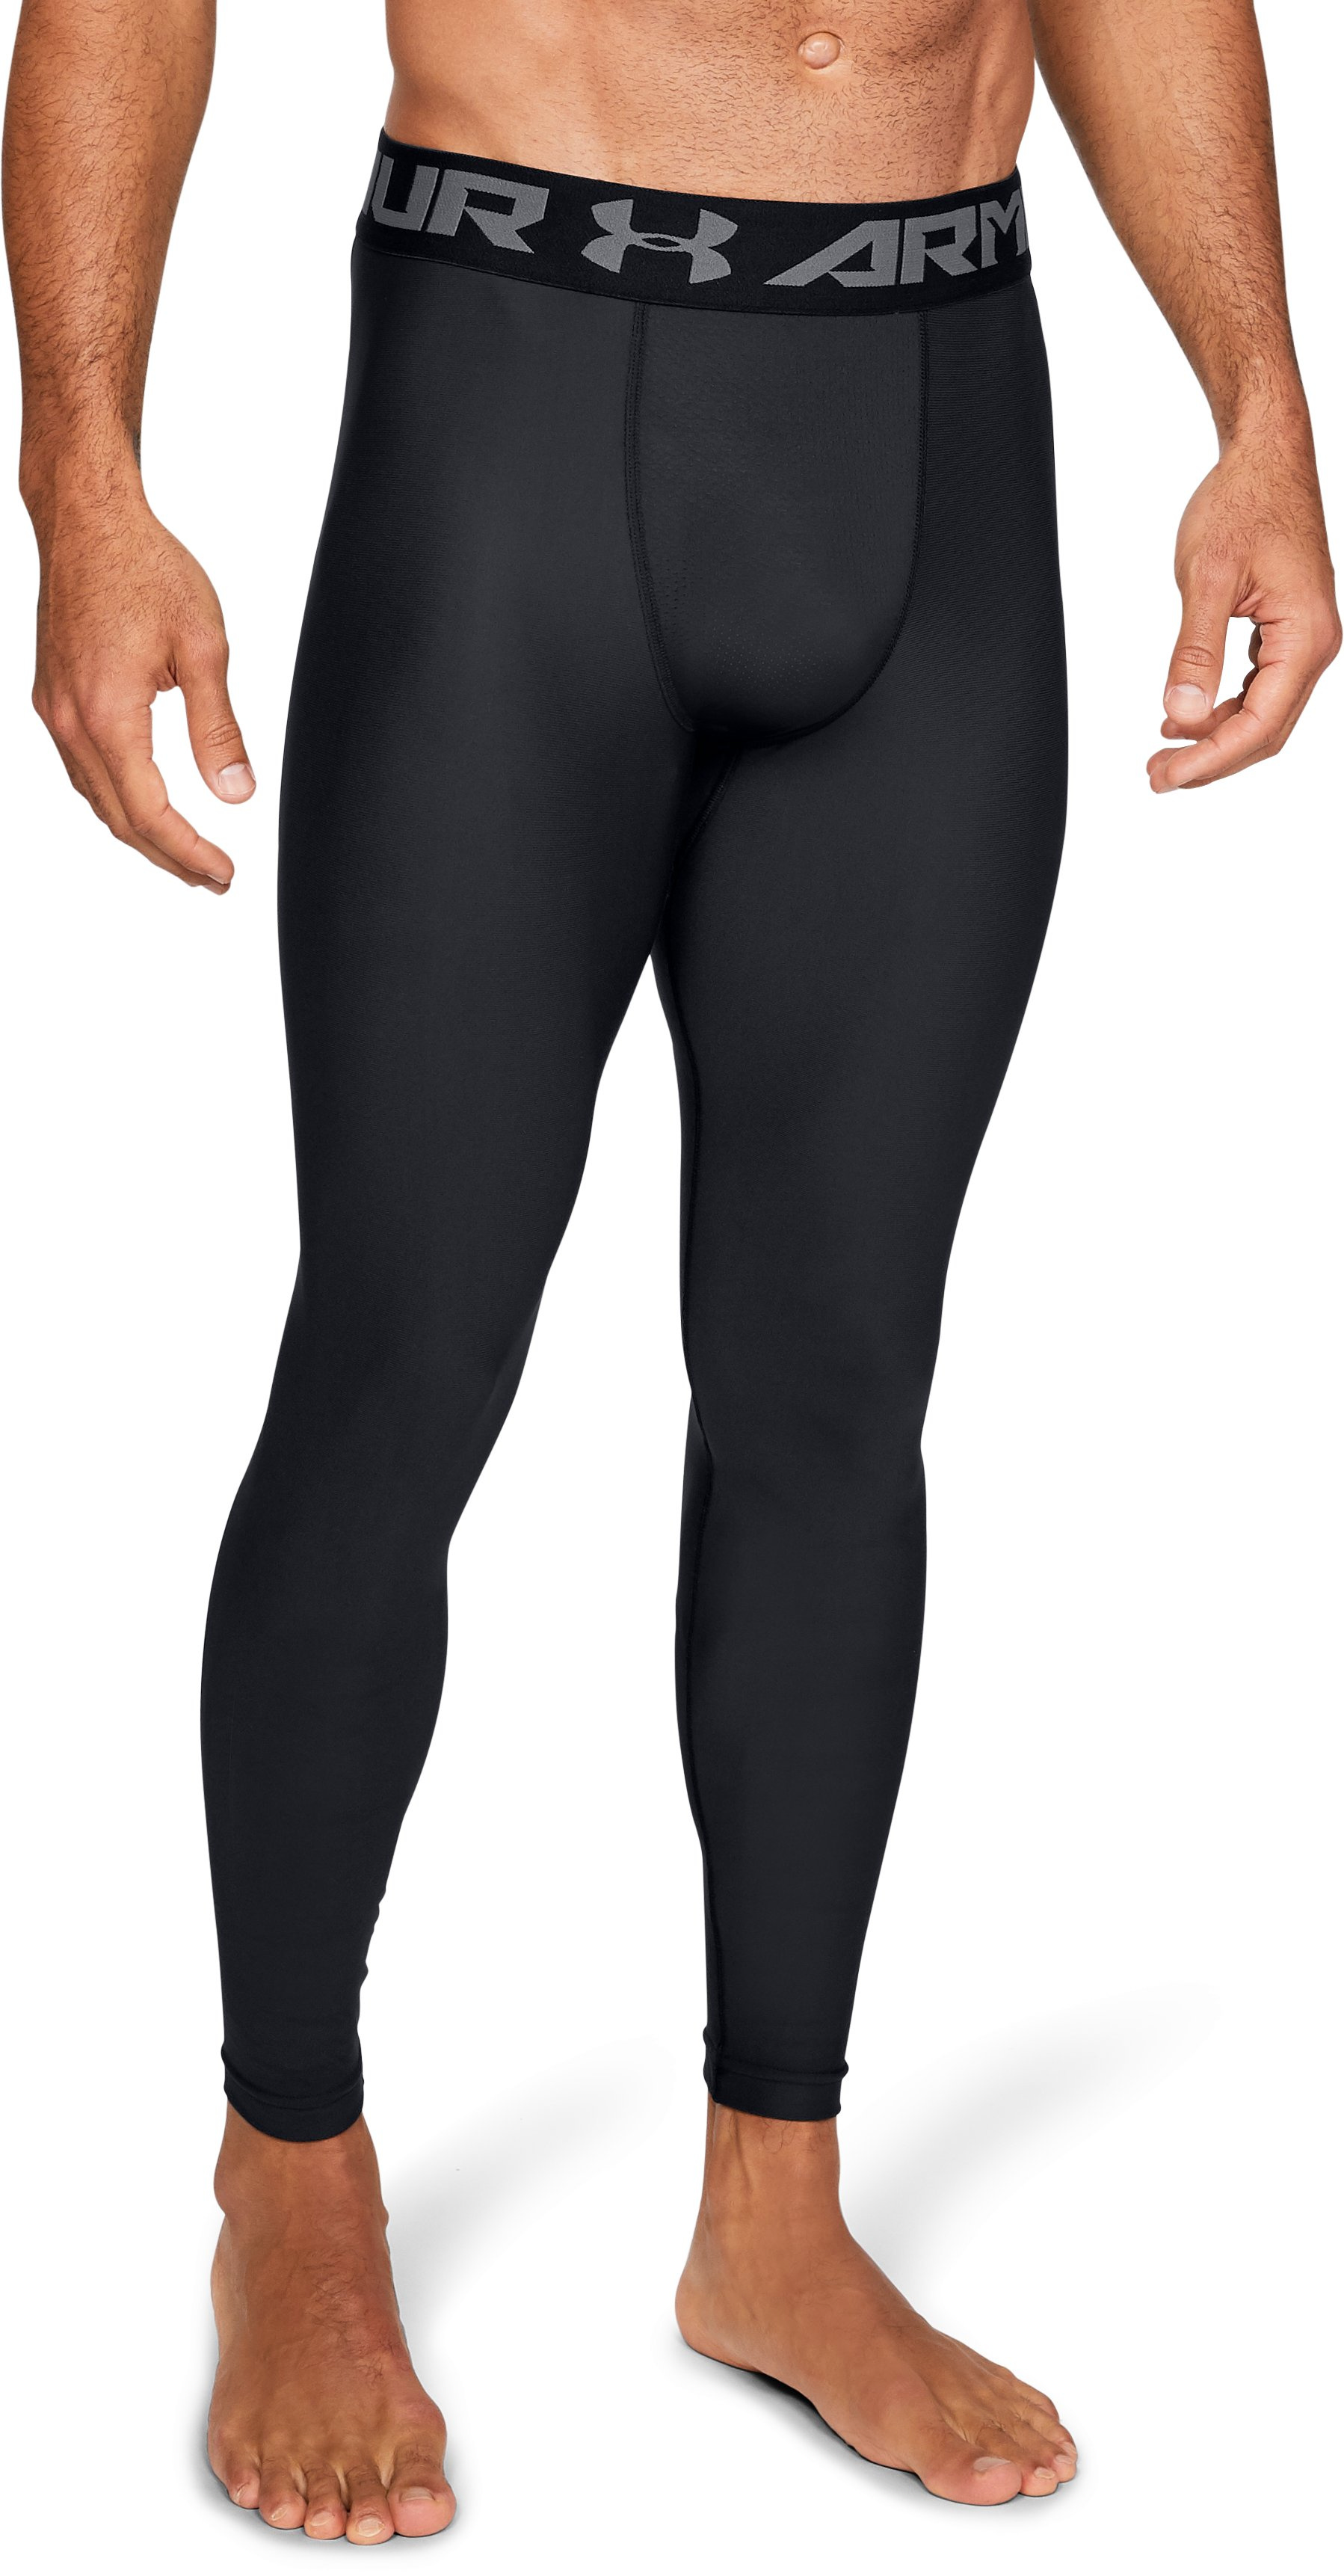 large leggings Men's HeatGear® Armour Compression Leggings Great product....I would most definitely buy it again.......Excellent football gear for the upcoming season!